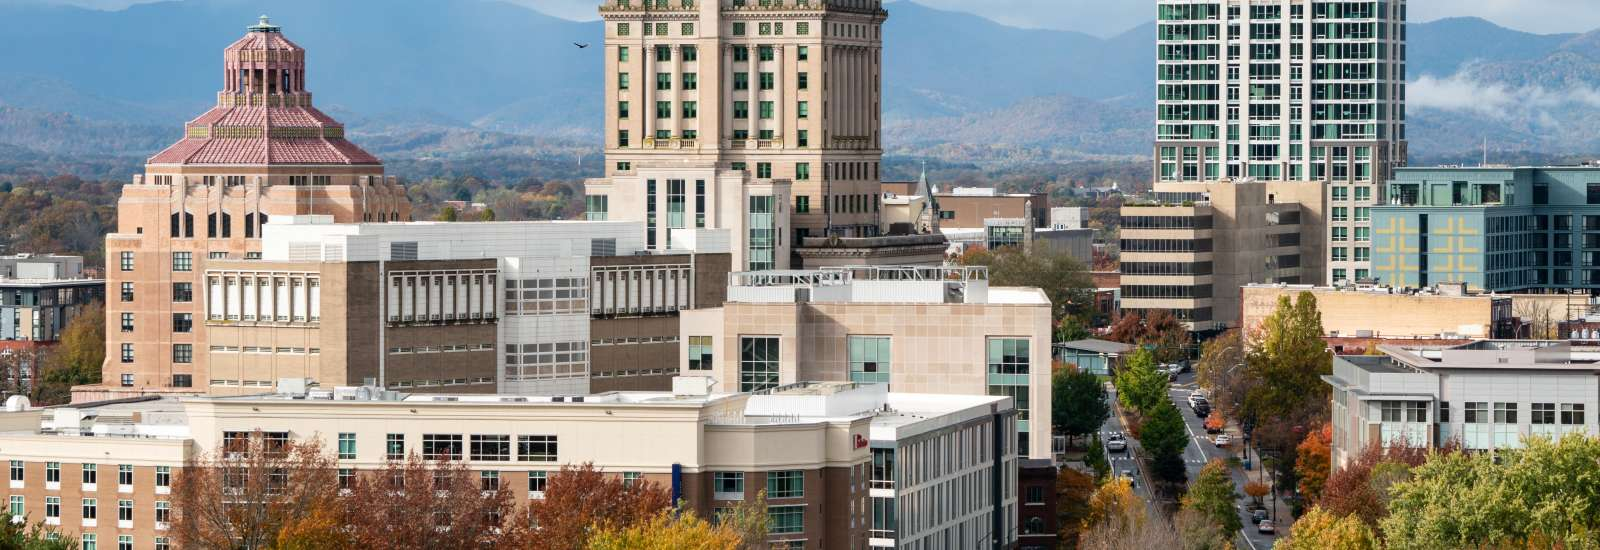 Dowtown Asheville with late fall color